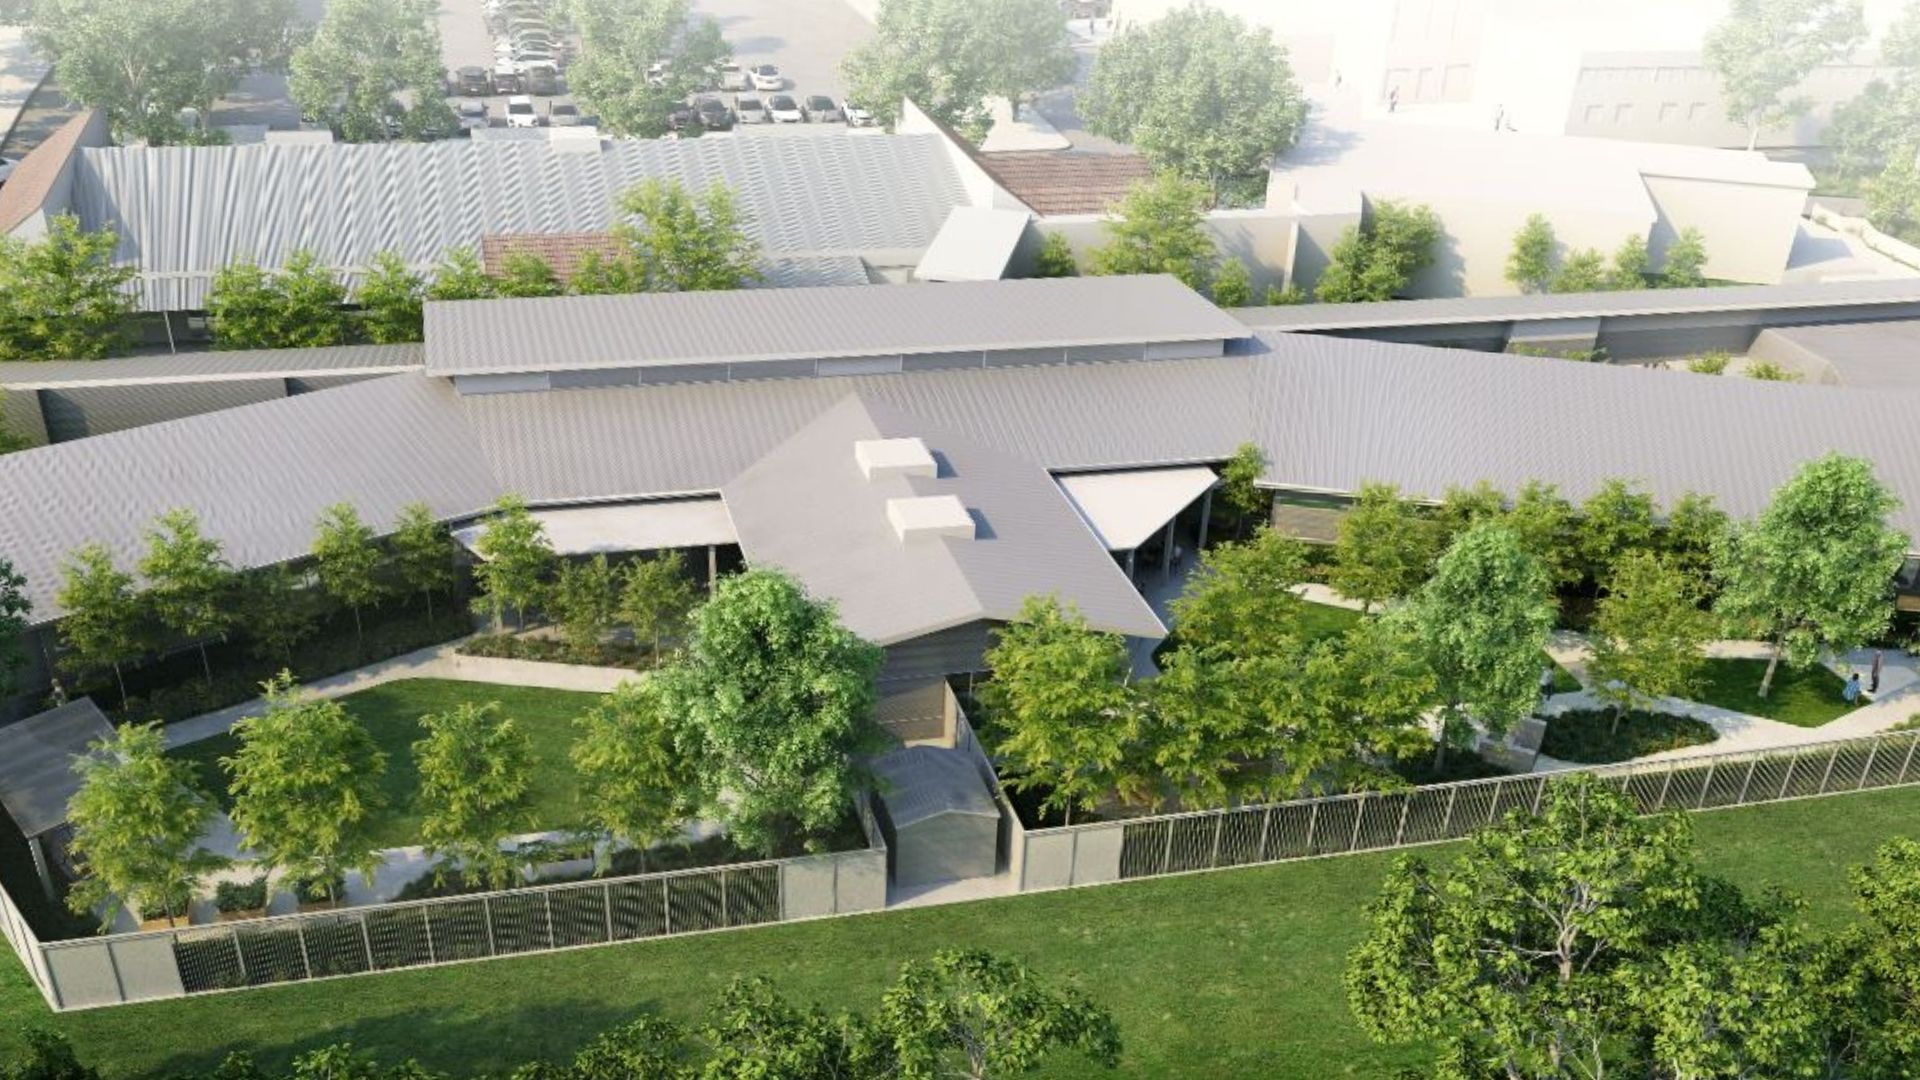 Overhead concept view of the Dementia Care facility